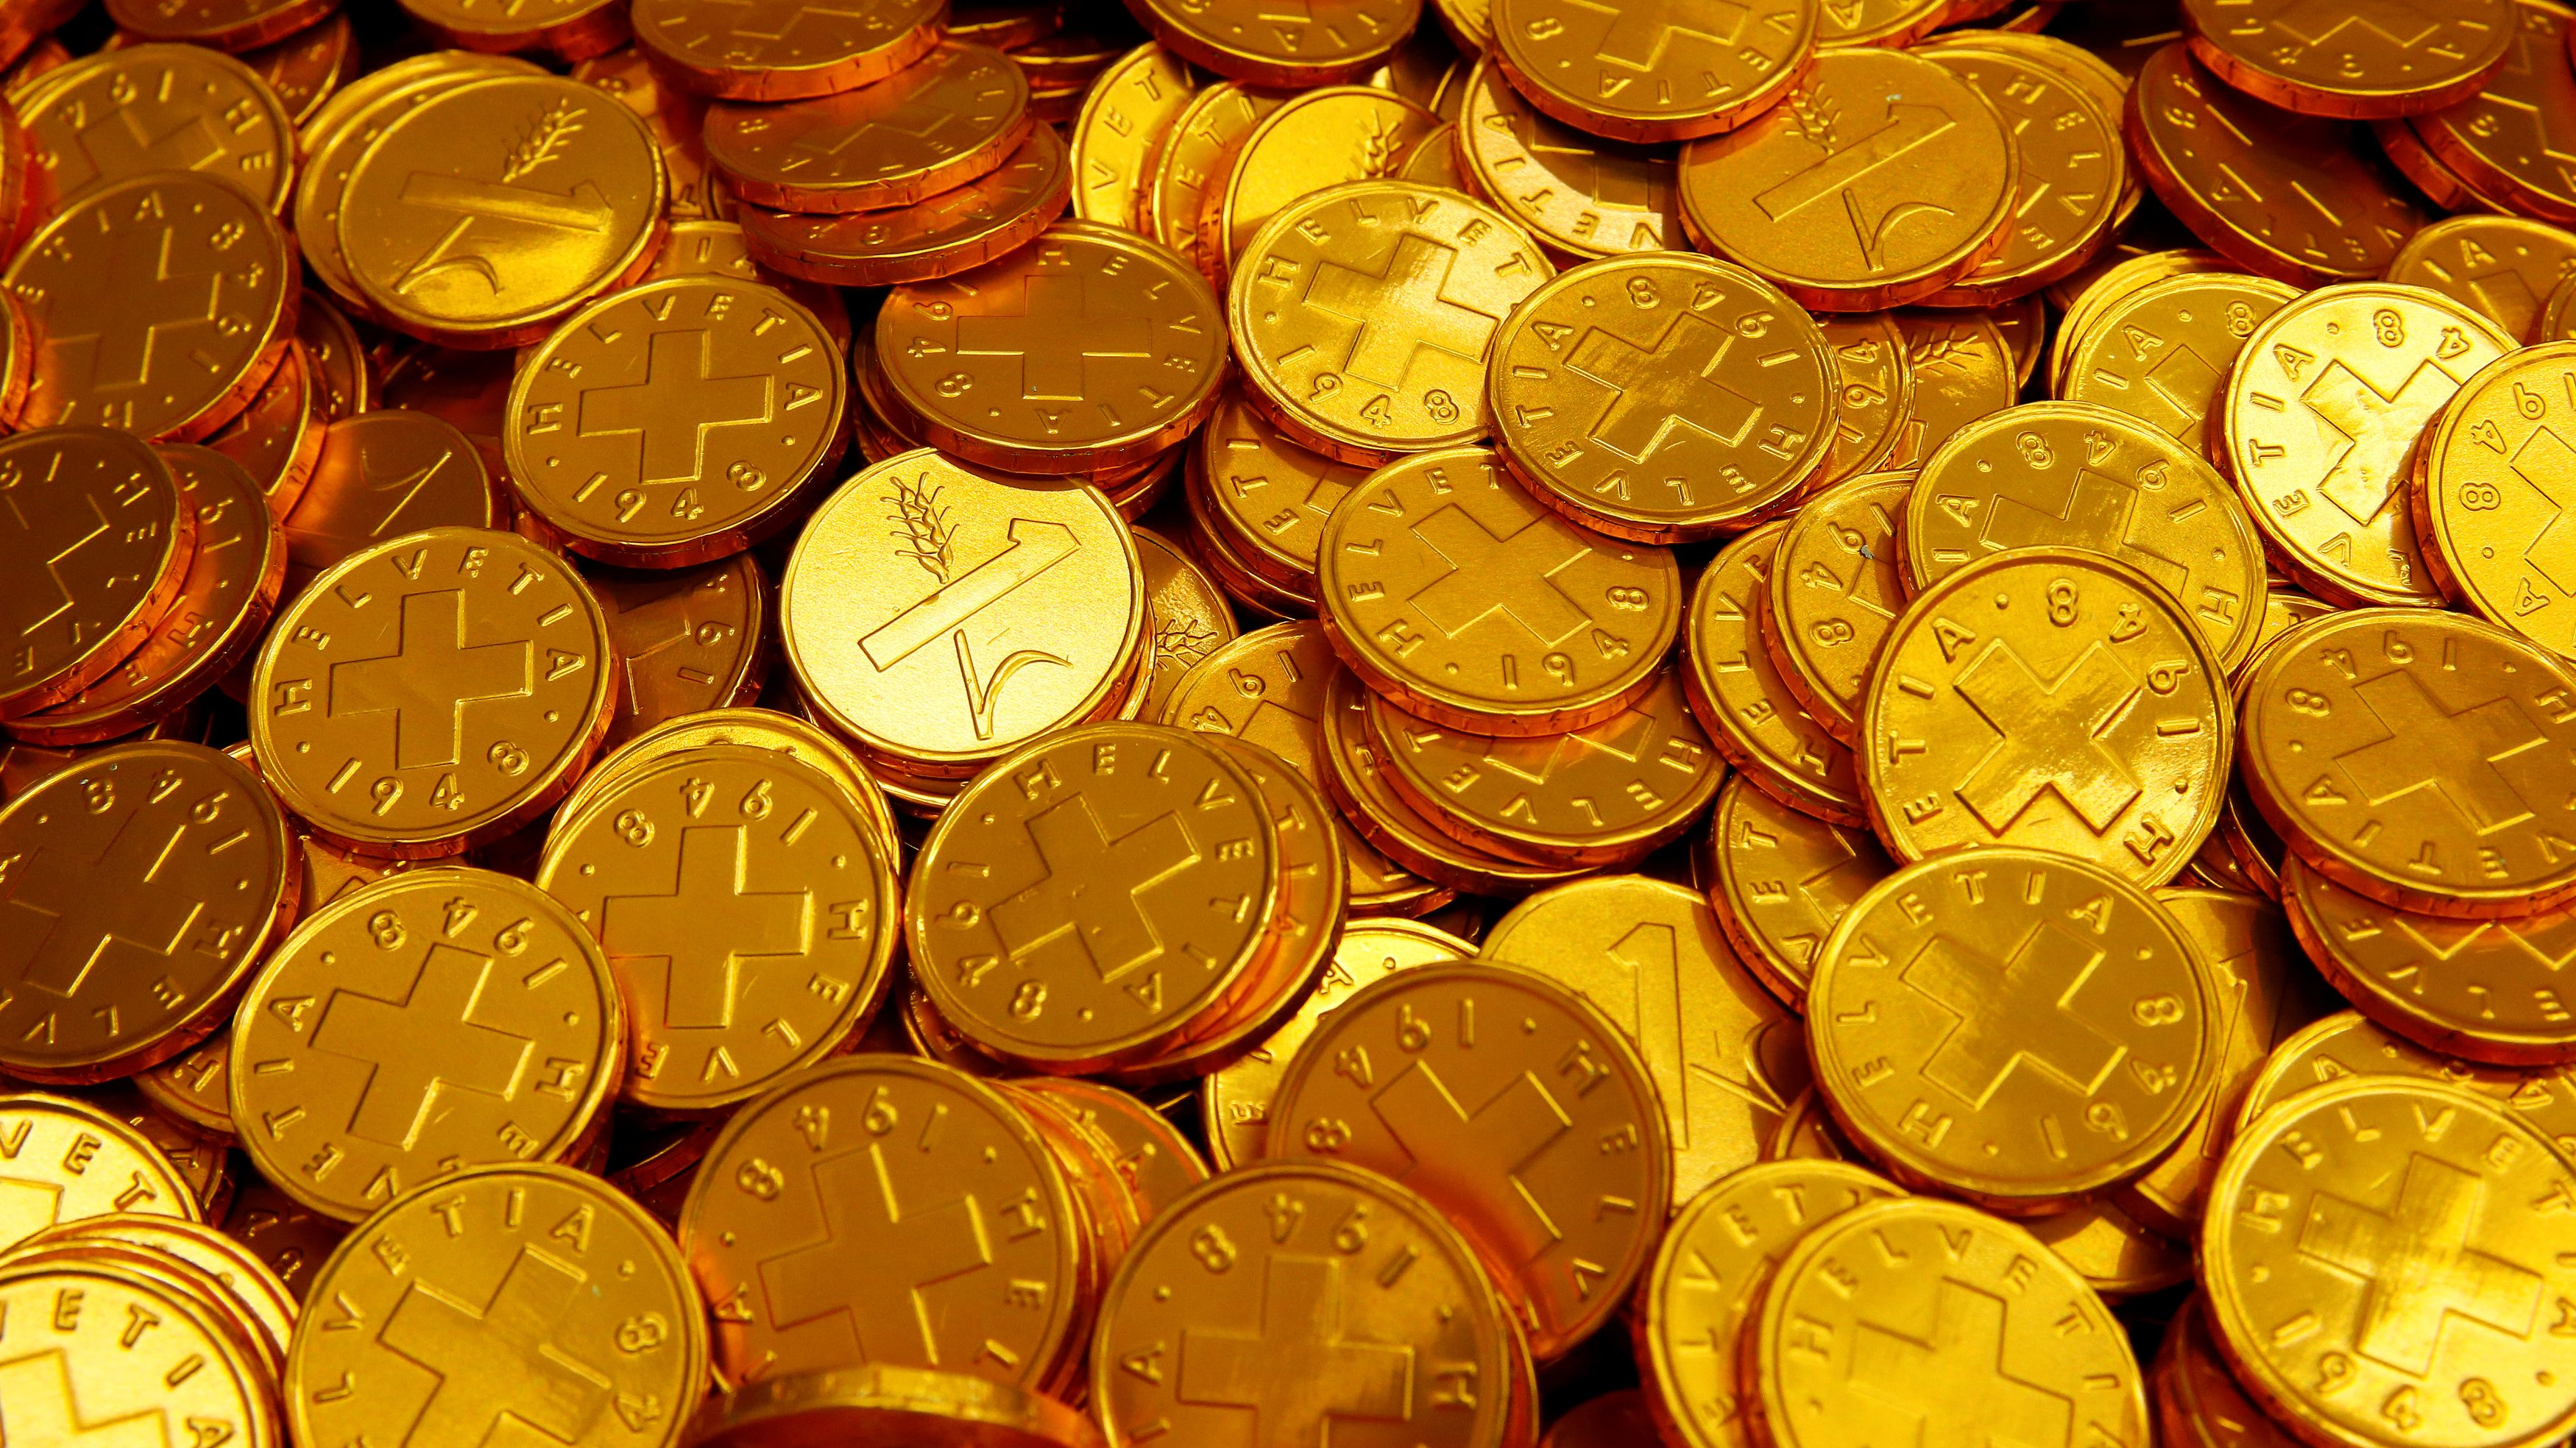 Chocolate coins are seen at the factory of Swiss chocolate manufacturer Aeschbach Chocolatier AG in Root-Luzern, Switzerland July 21, 2017.